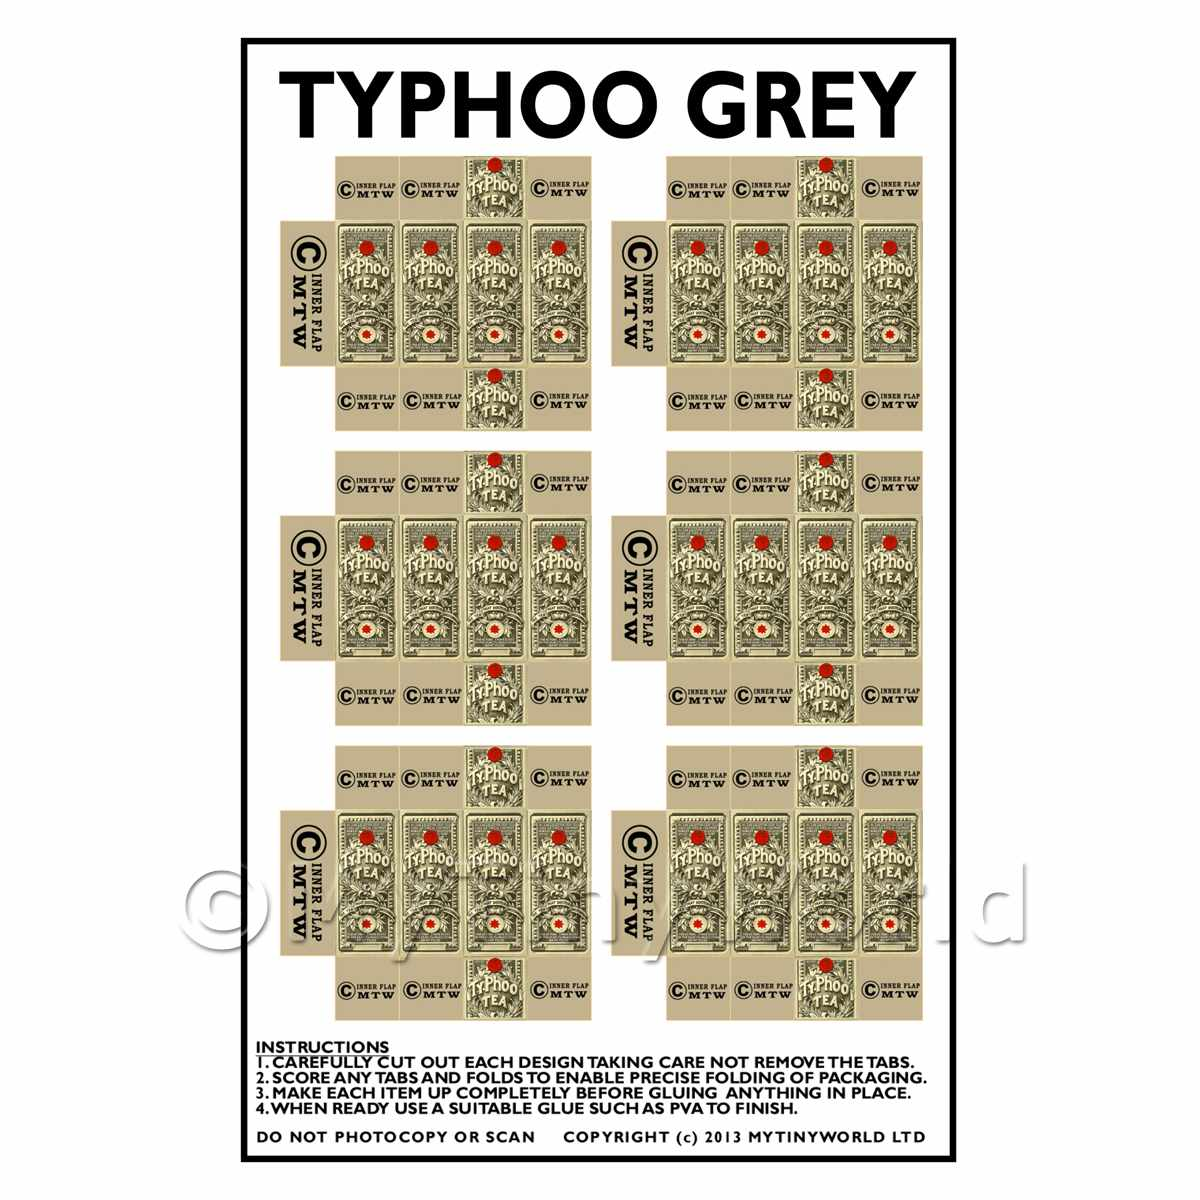 Dolls House Miniature Packaging Sheet of 6 Typhoo Grey